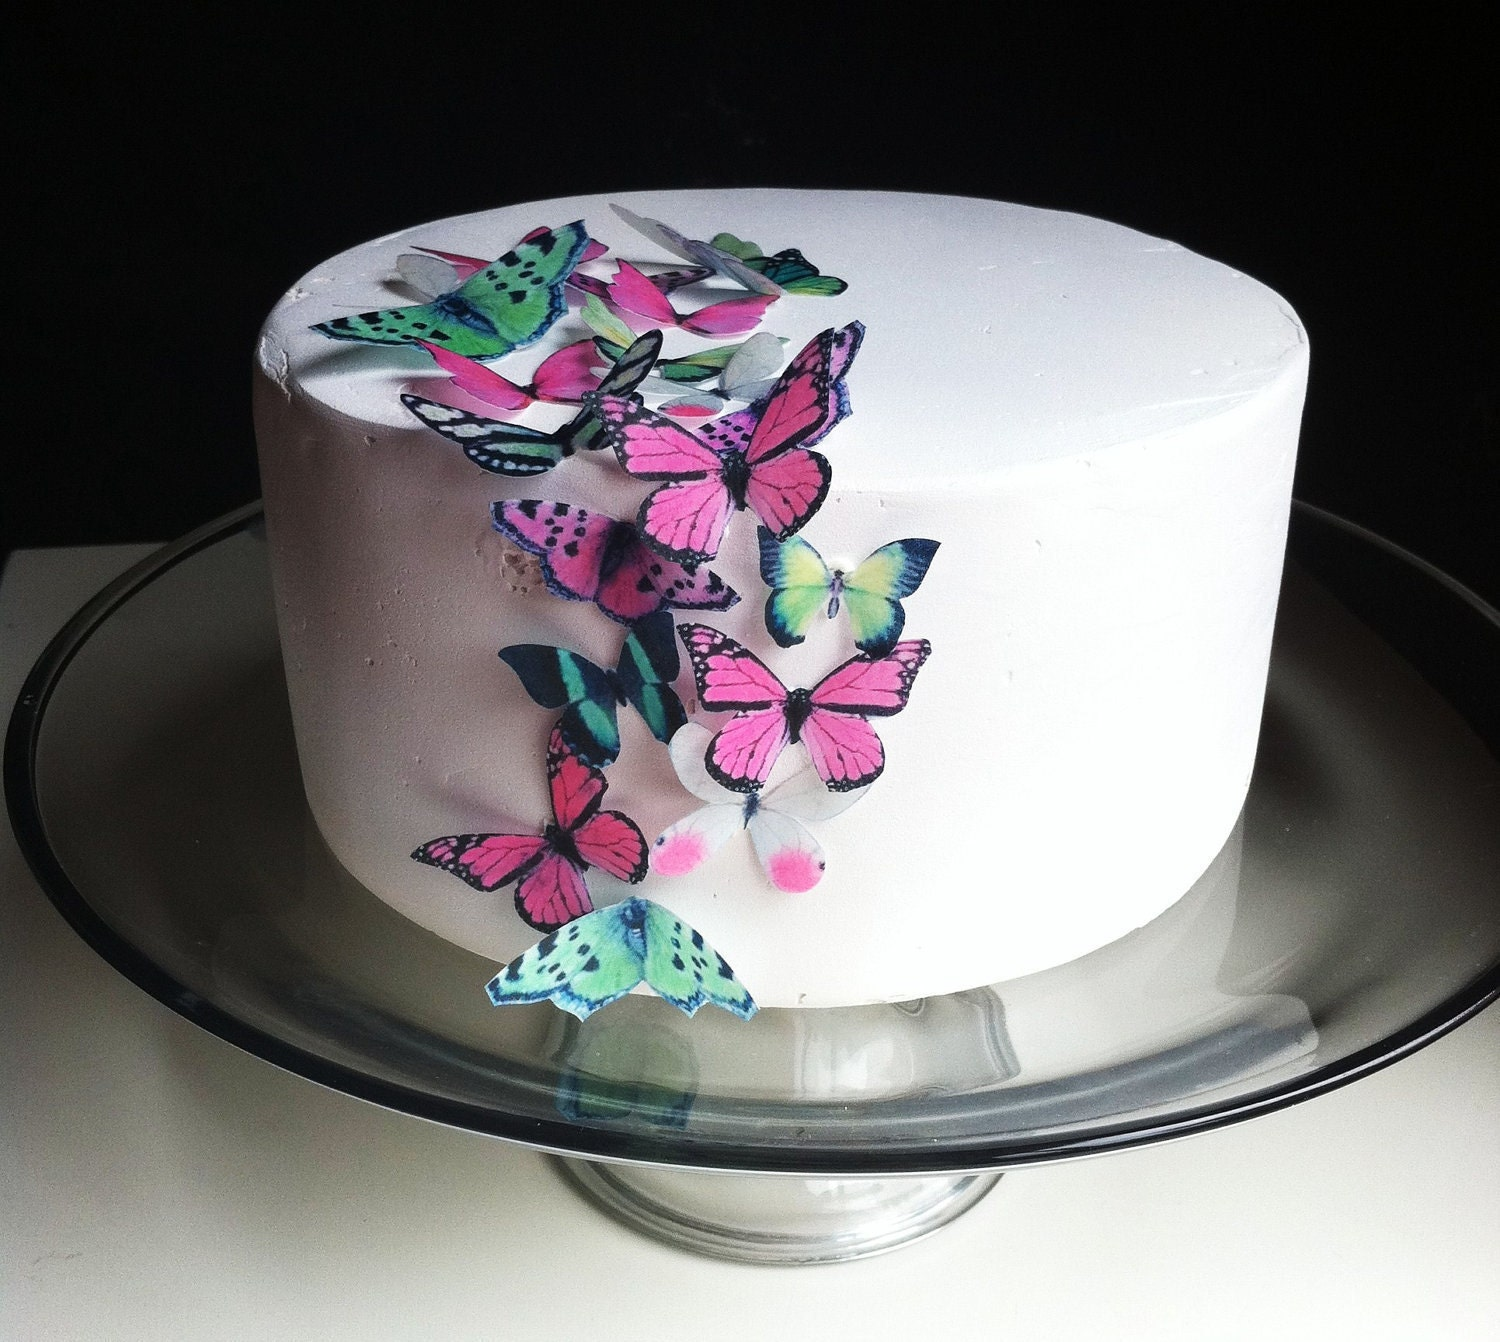 Cake Decoration Butterfly : EDIBLE Butterfly Cake Decorations 24 Green and Pink Edible